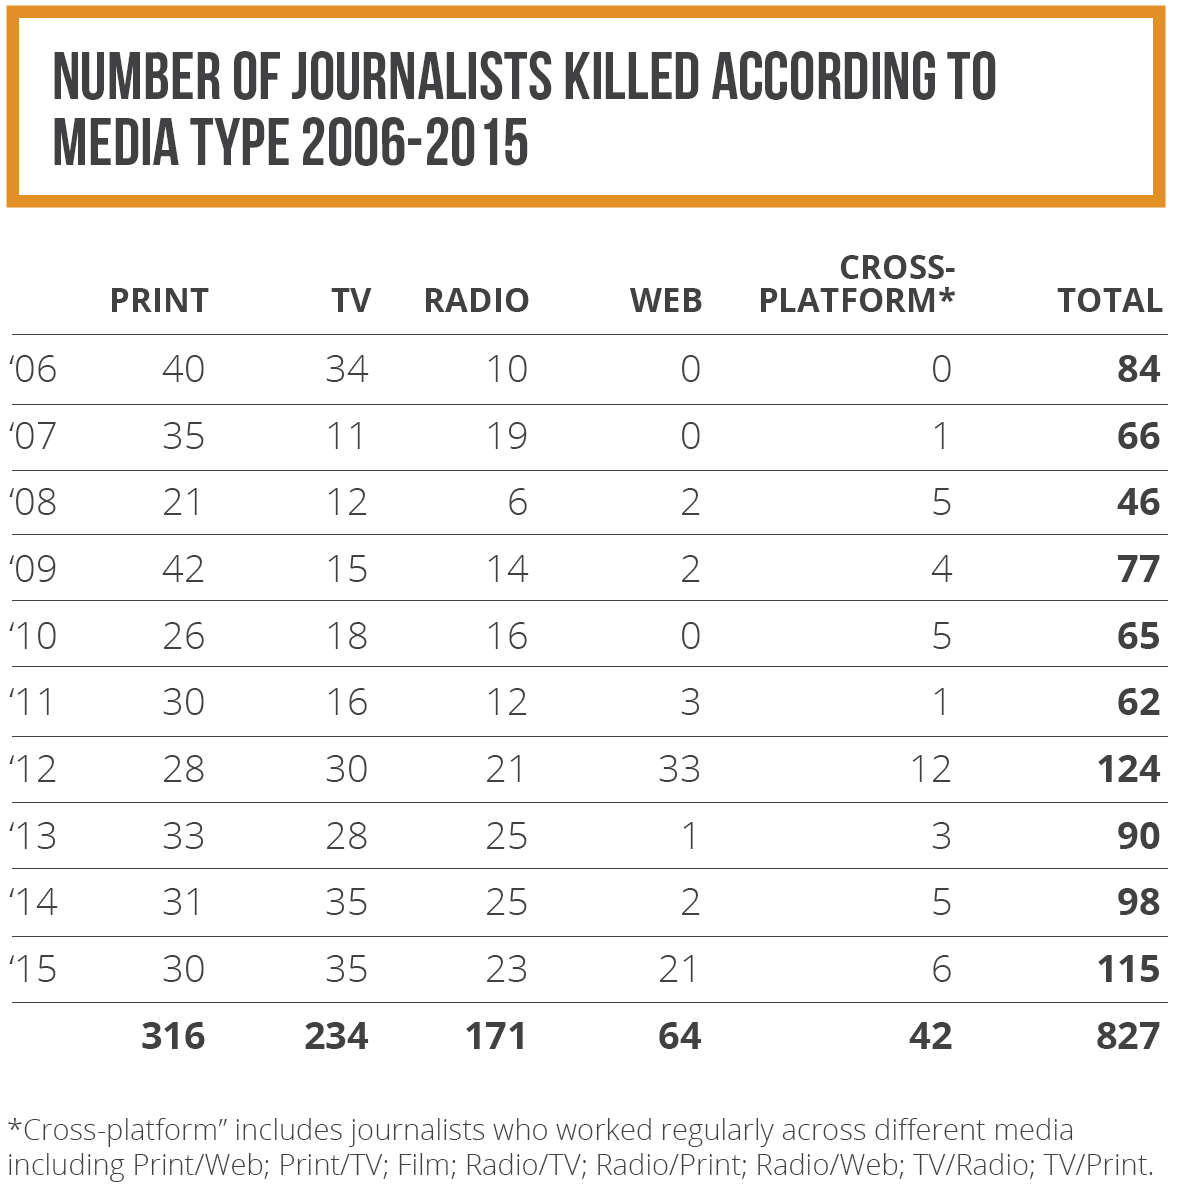 Number of journalists killed according to type of medium 2006-2015